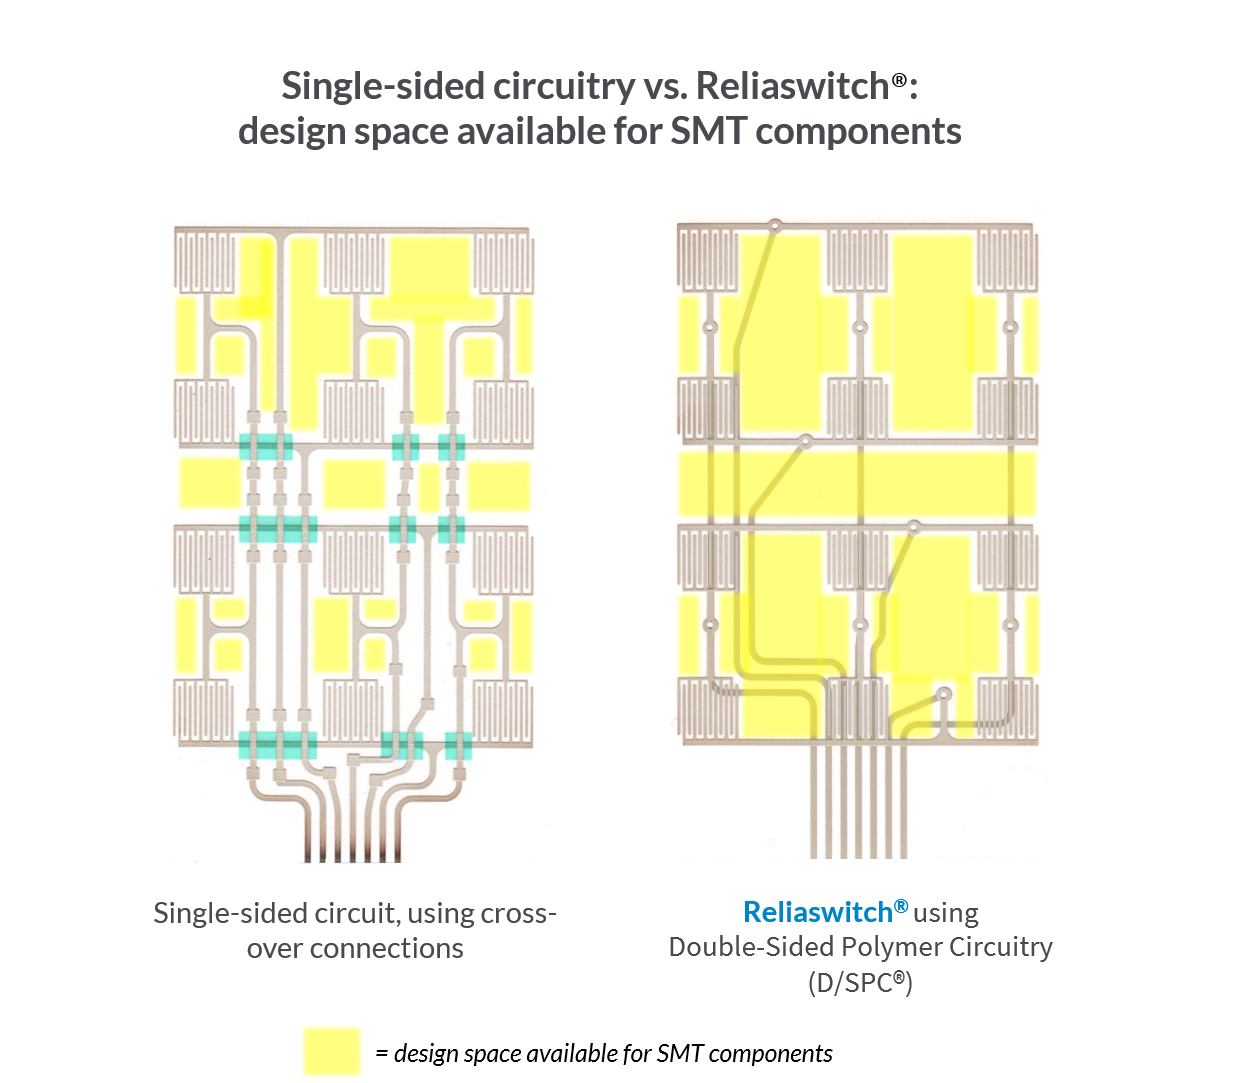 Compared to single-sided circuits, Reliaswitch®'s double-sided technology offers more room to place SMT components (e.g., LEDs or resistors),  without  increasing your circuitry footprint. Limited to only one side of the substrate, space constraints often force single-sided competitors to use a less reliable dual-circuit design to meet SMT requirements. Reliaswitch enables you to accommodate SMT requirements while keeping your membrane switch more reliable, flexible and thinner.